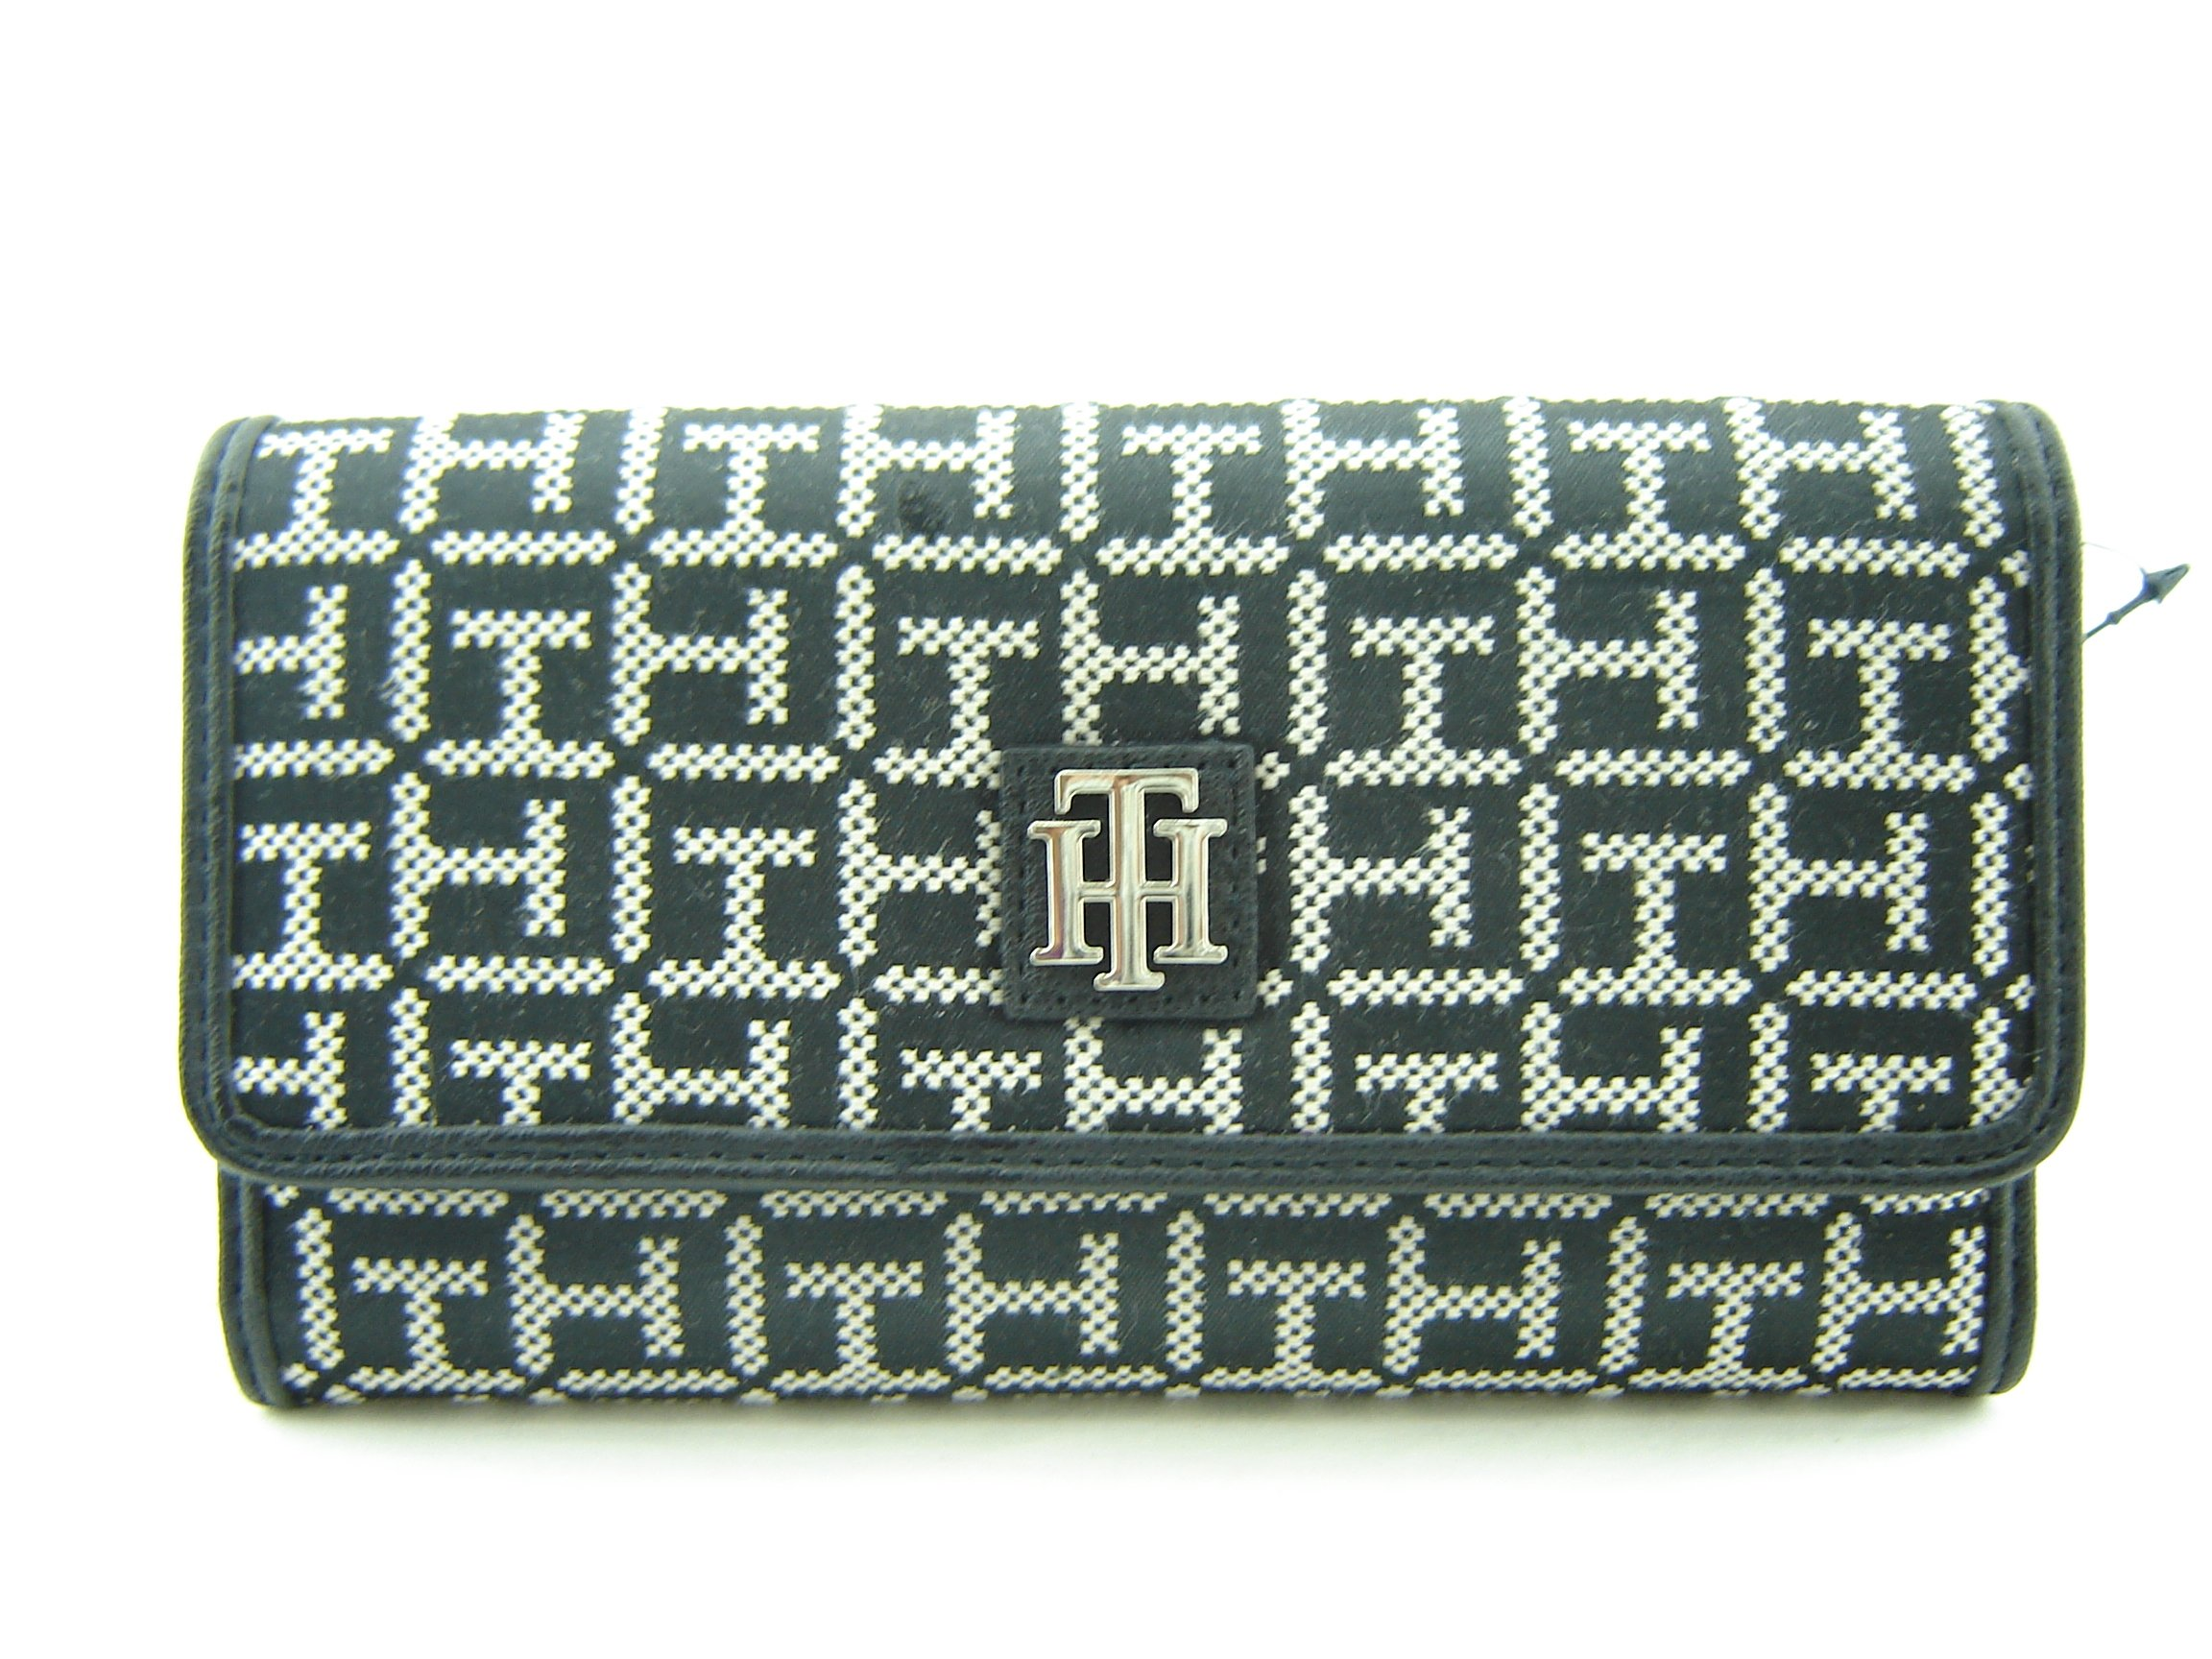 Tommy Hilfiger Logo Women's Wallet Clutch Bag - Black / White